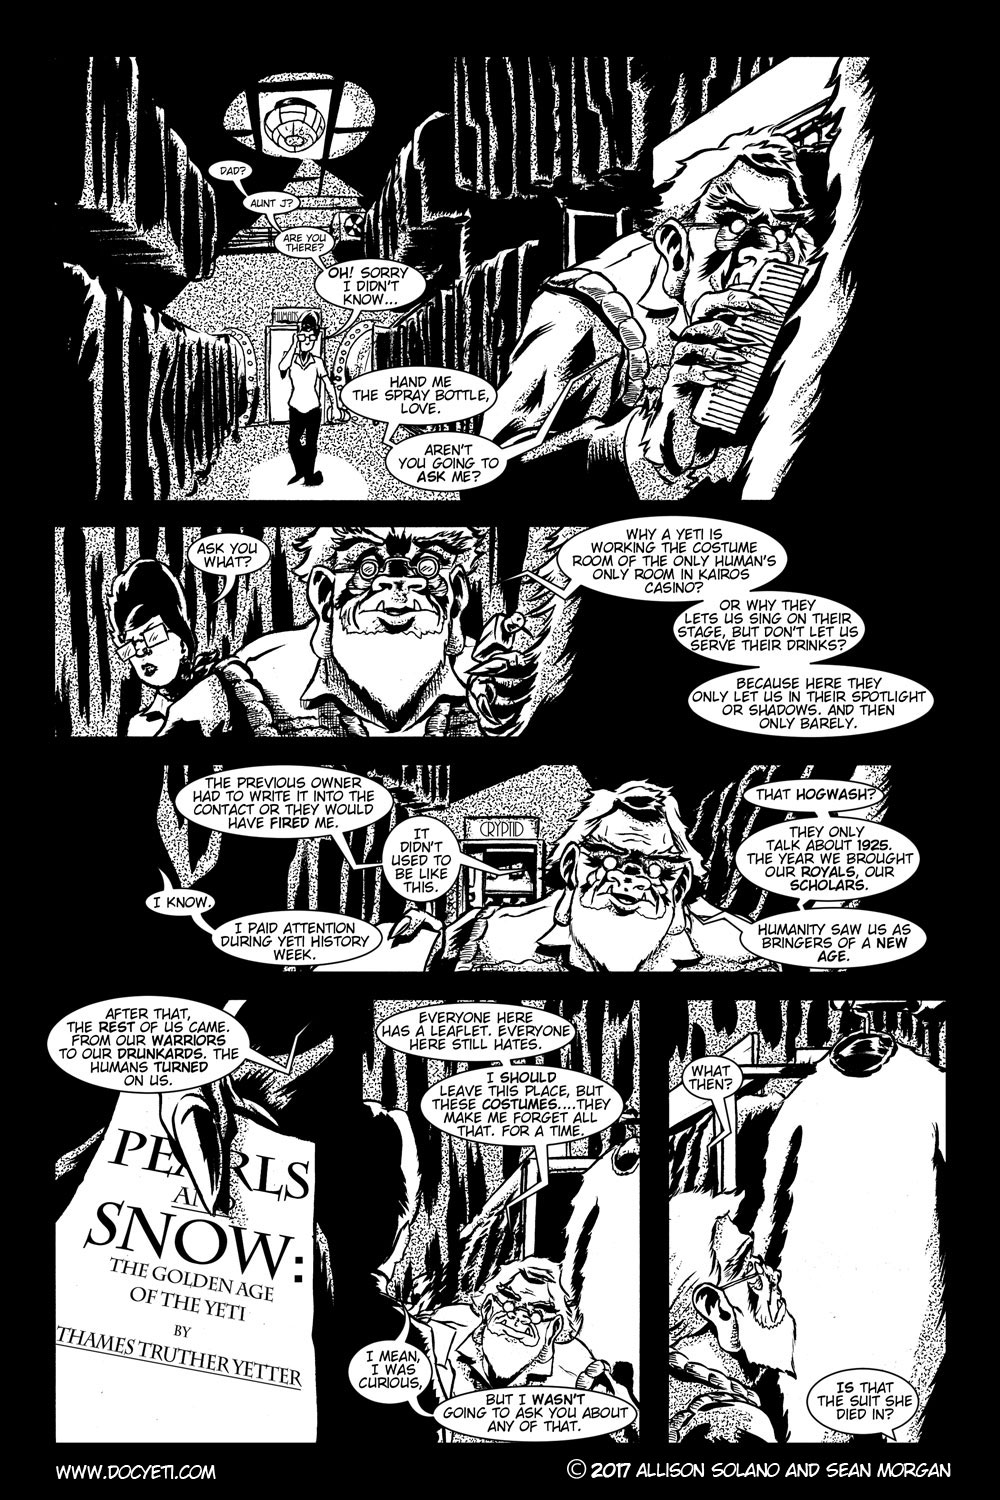 This Yeti for Hire! or the Yeti with the Lace Kerchief! Issue 2 pg.4